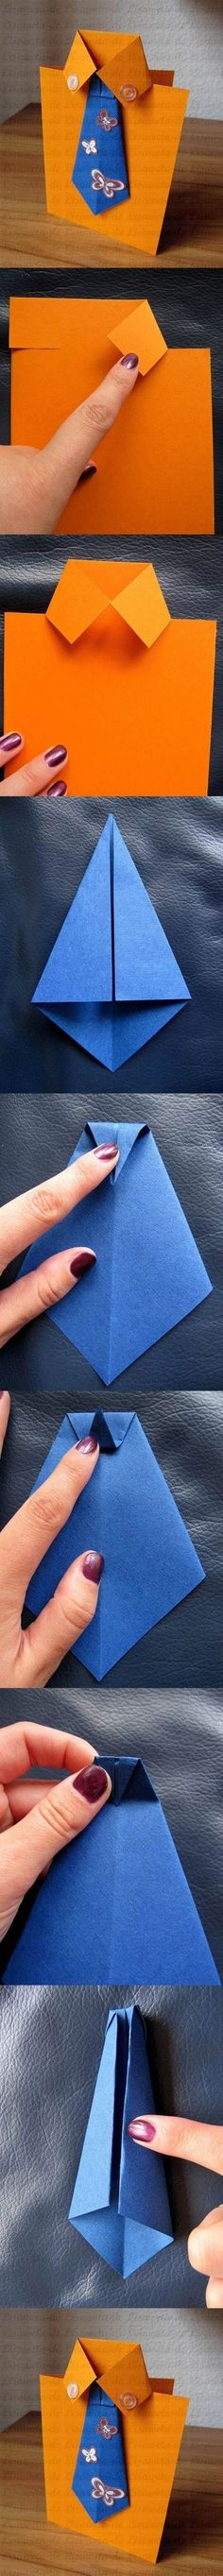 DIY Tie and Shirt Greeting Card | iCreativeIdeas.com Like Us on Facebook == https://www.facebook.com/icreativeideas: